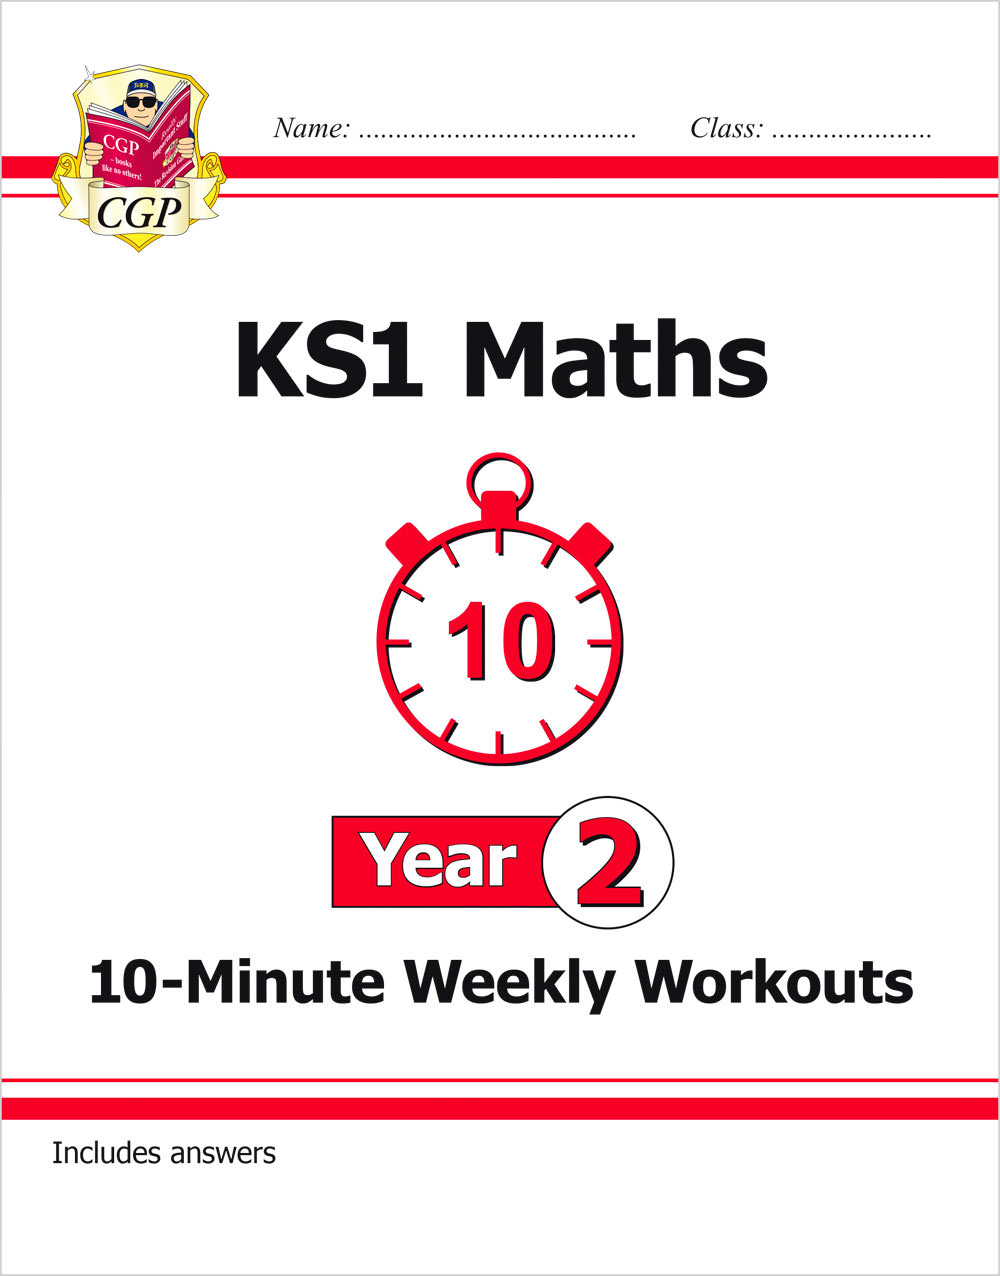 M2XW11 - KS1 Maths 10-Minute Weekly Workouts - Year 2